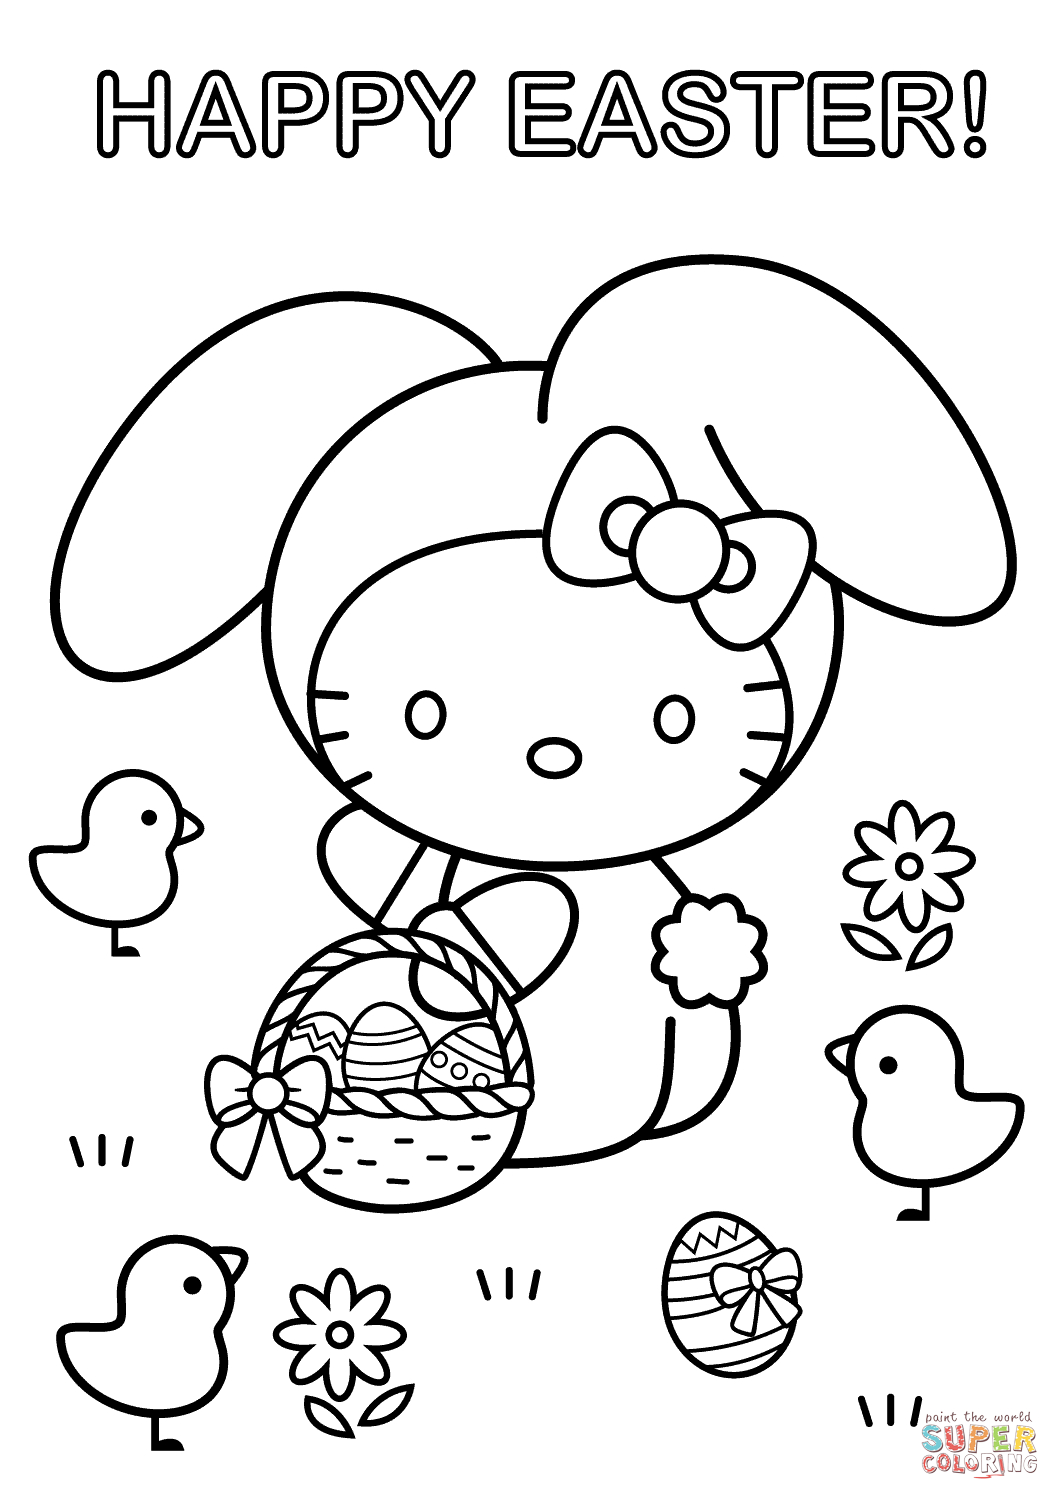 Disney Easter Coloring Pages Happy Easter Coloring Pages for Kids ...